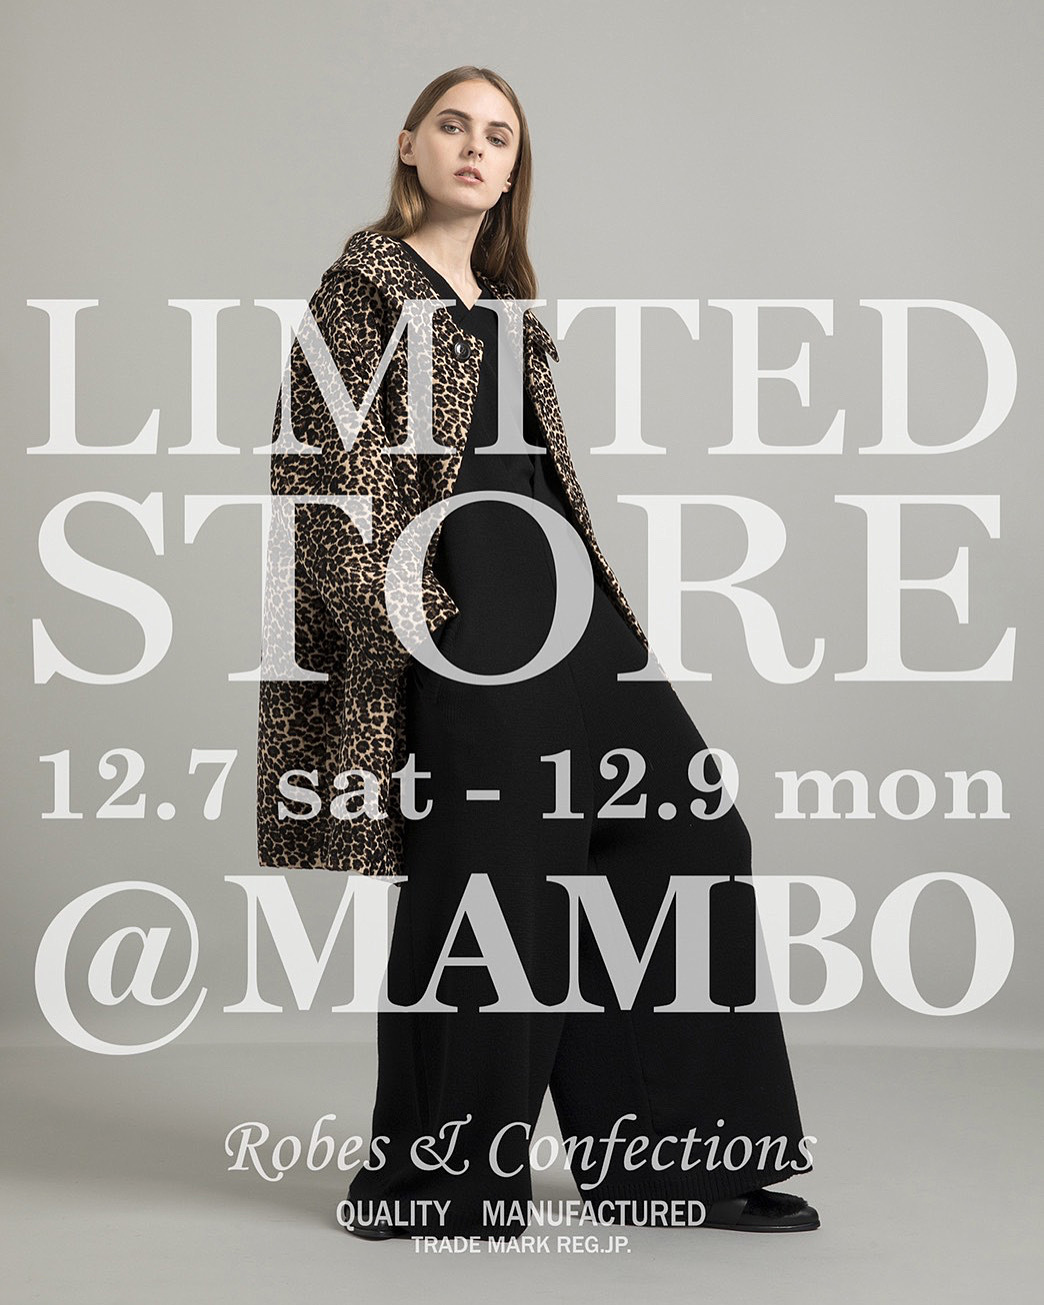 Robes&confections  pop-up @ mambo !!!_e0333571_12472651.jpeg